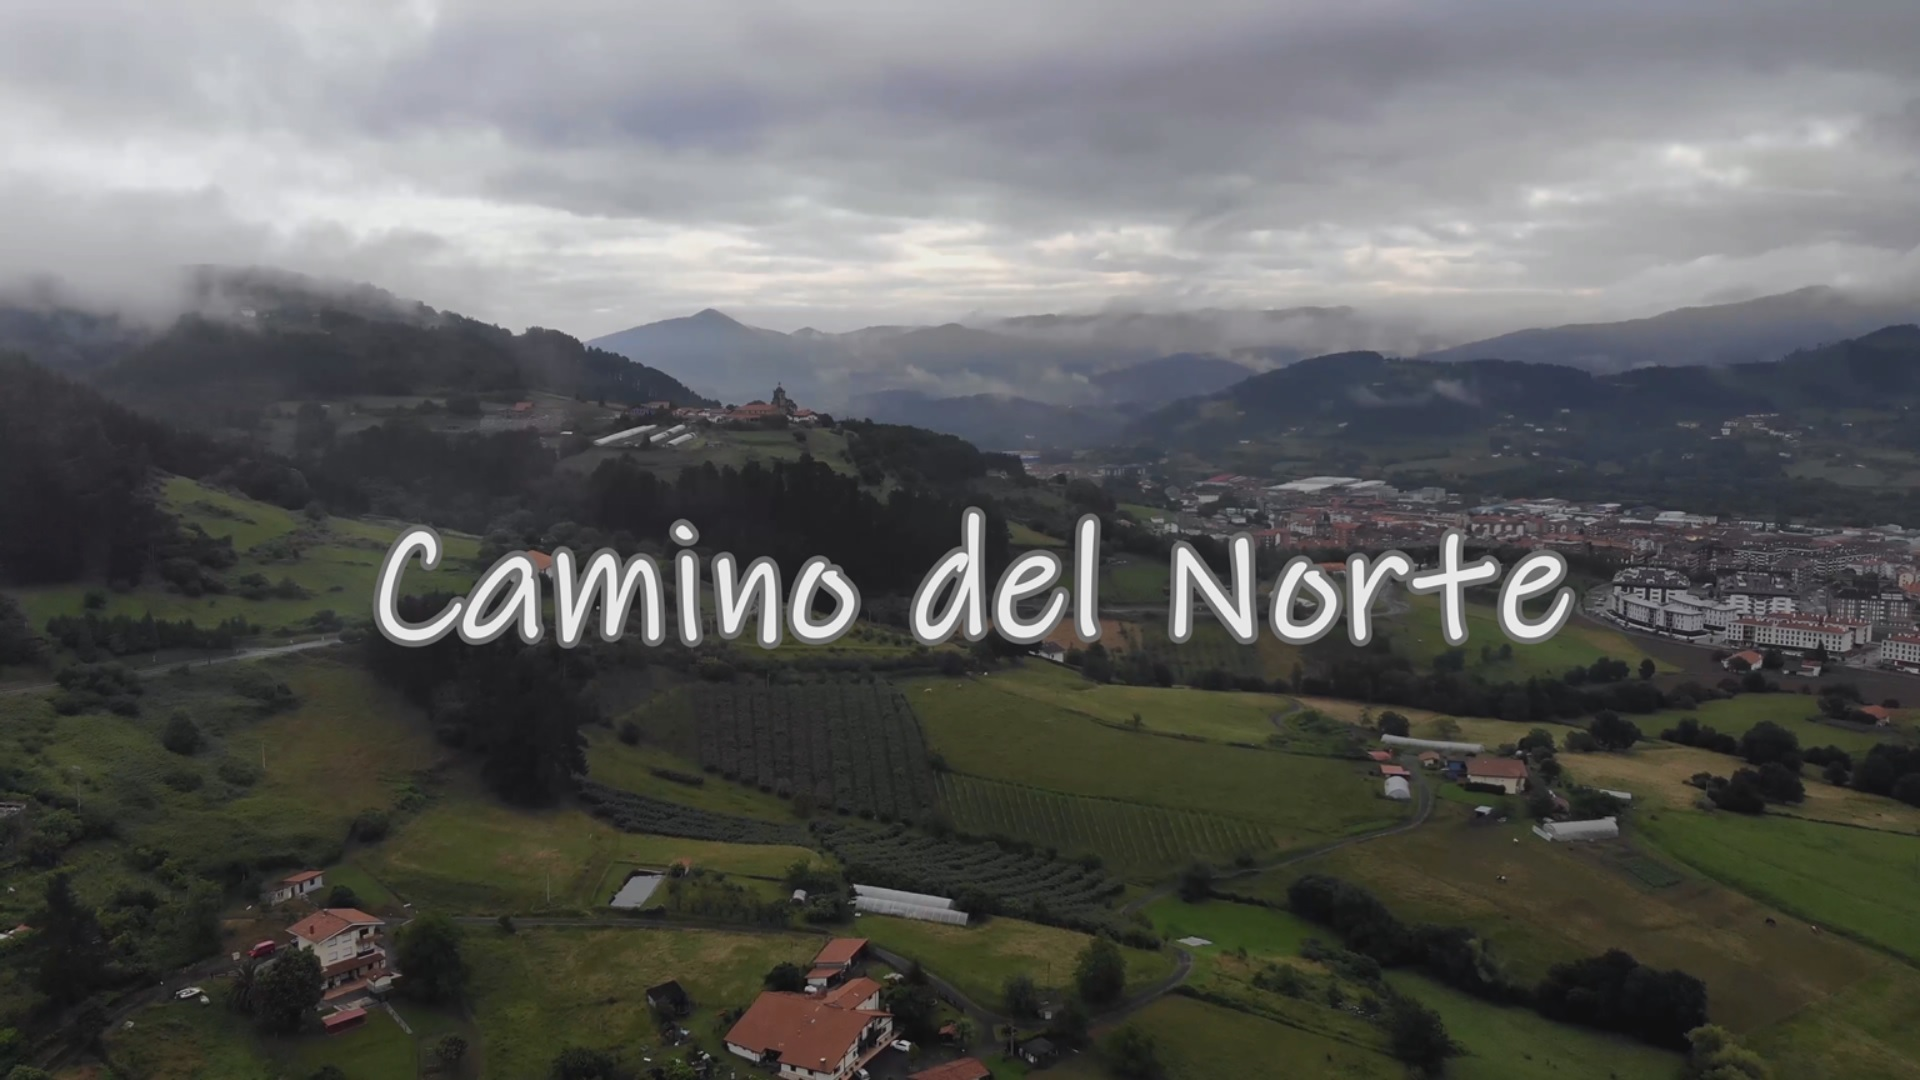 camino_del_norte_video_yt_cover.jpg